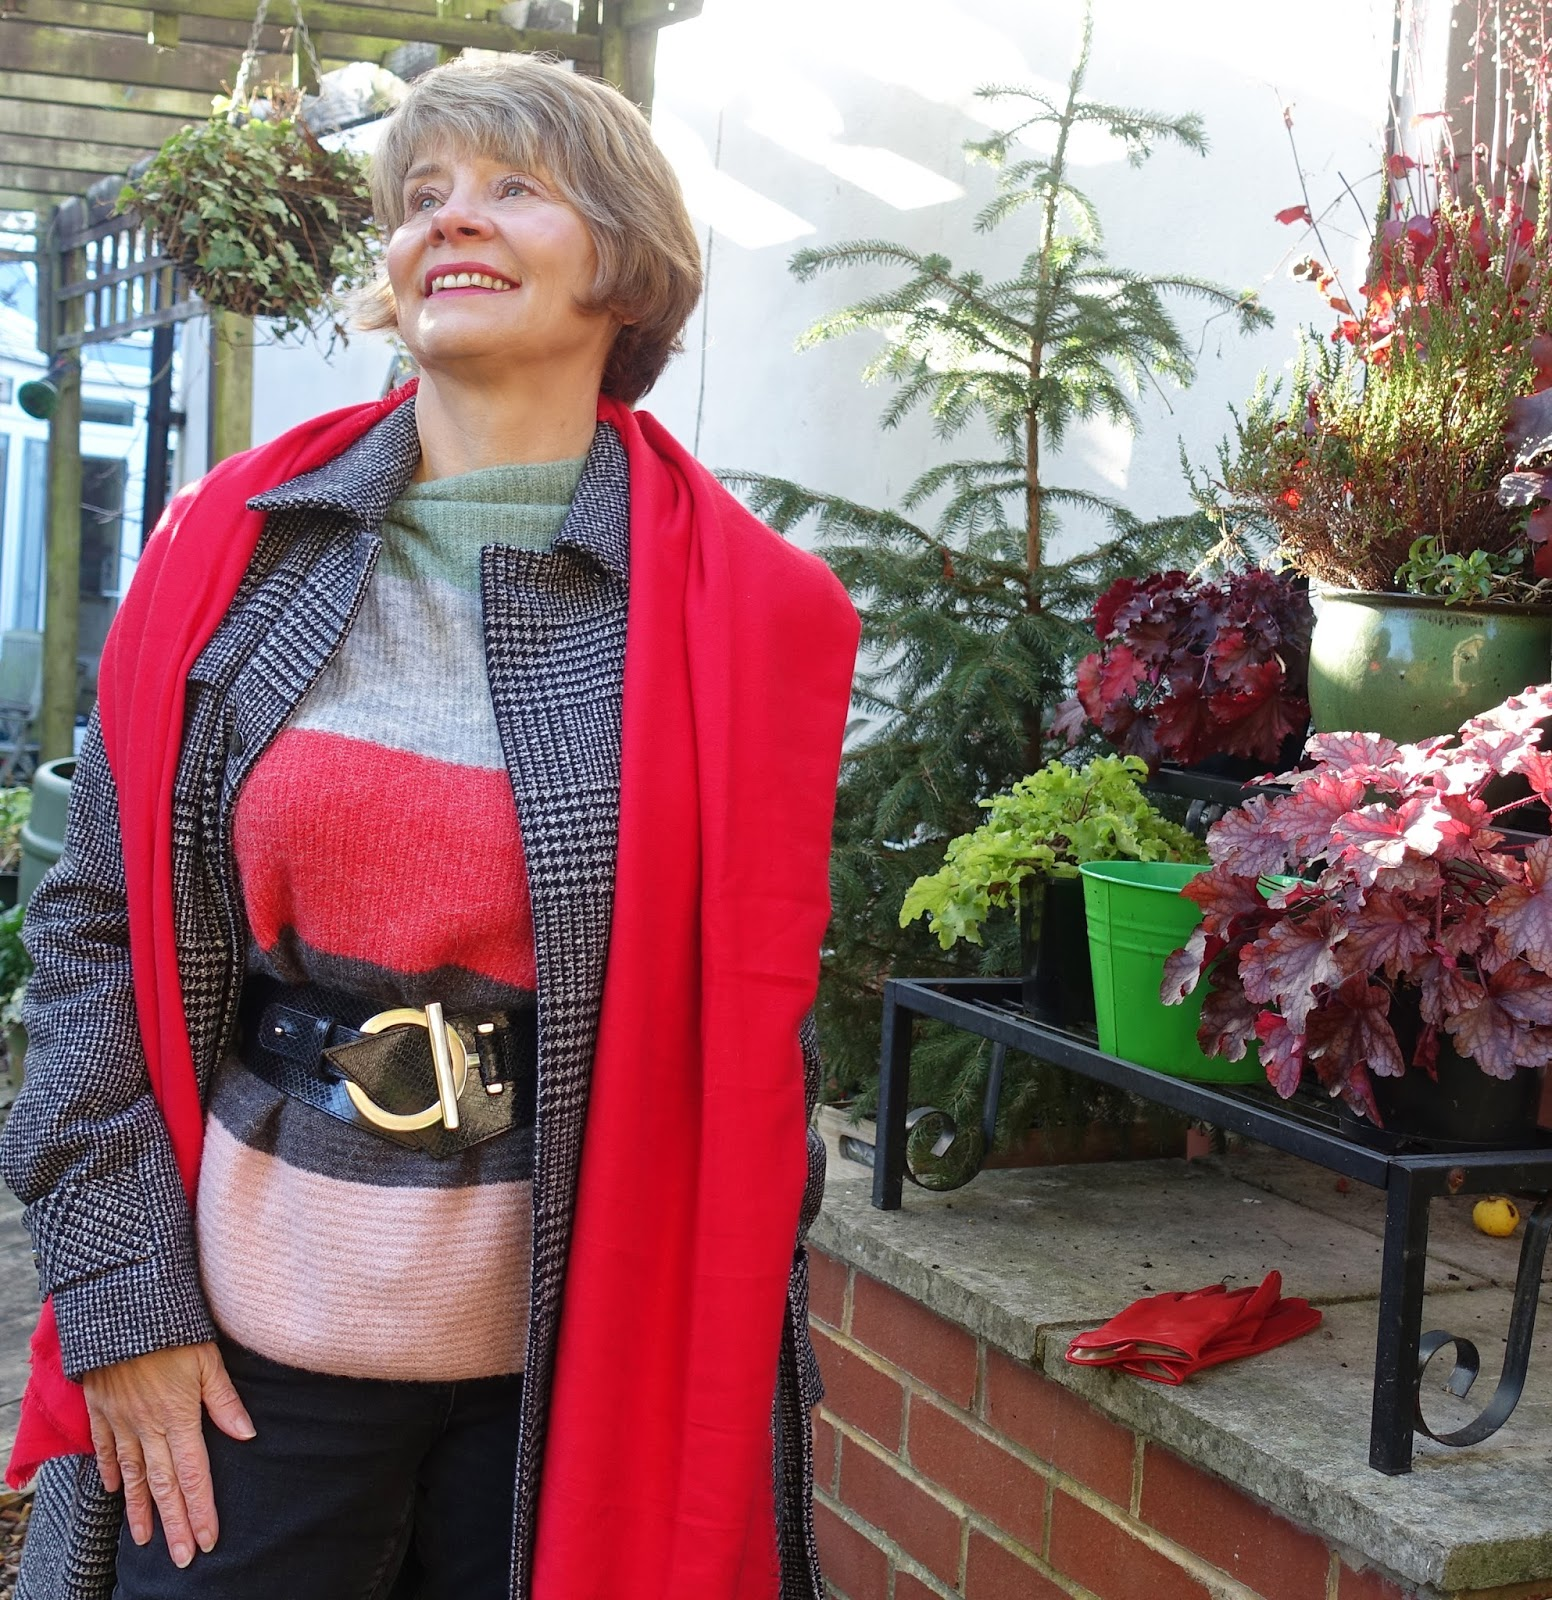 Image showing a smiling woman over the age of 50 wearing a striped winter jumper red scarf and check coat